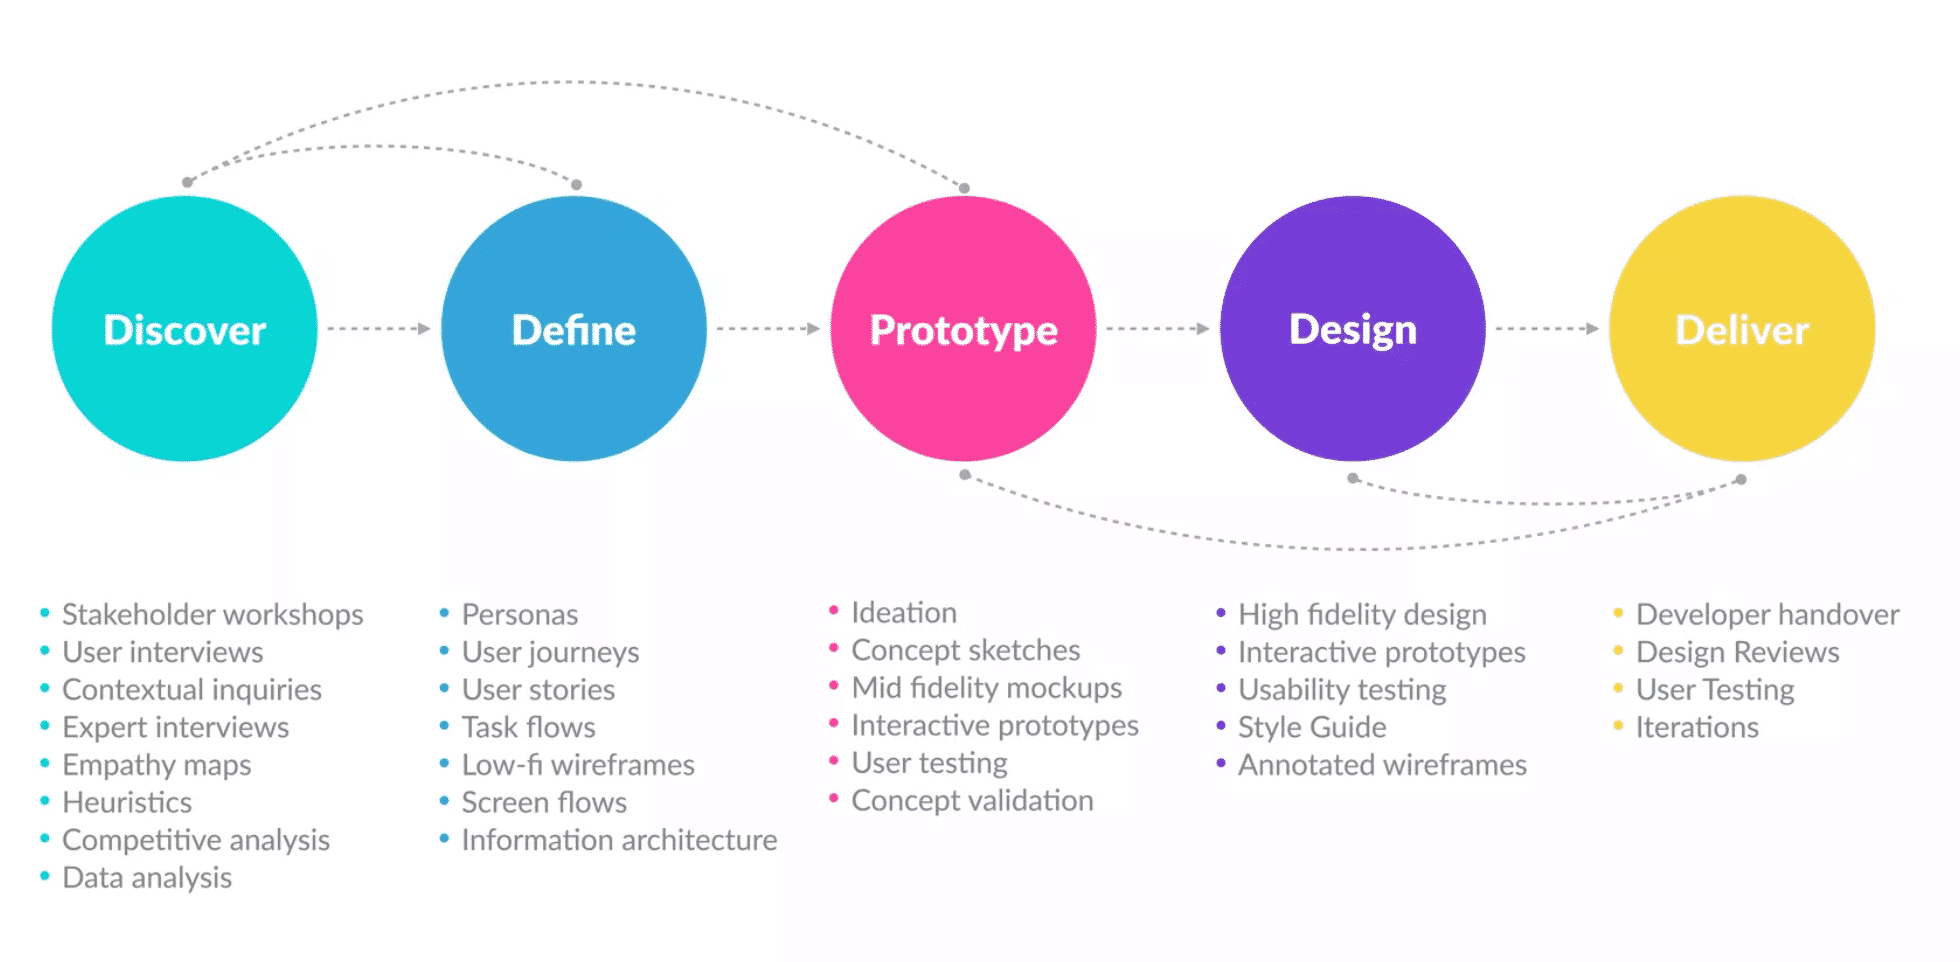 Traditional UX process